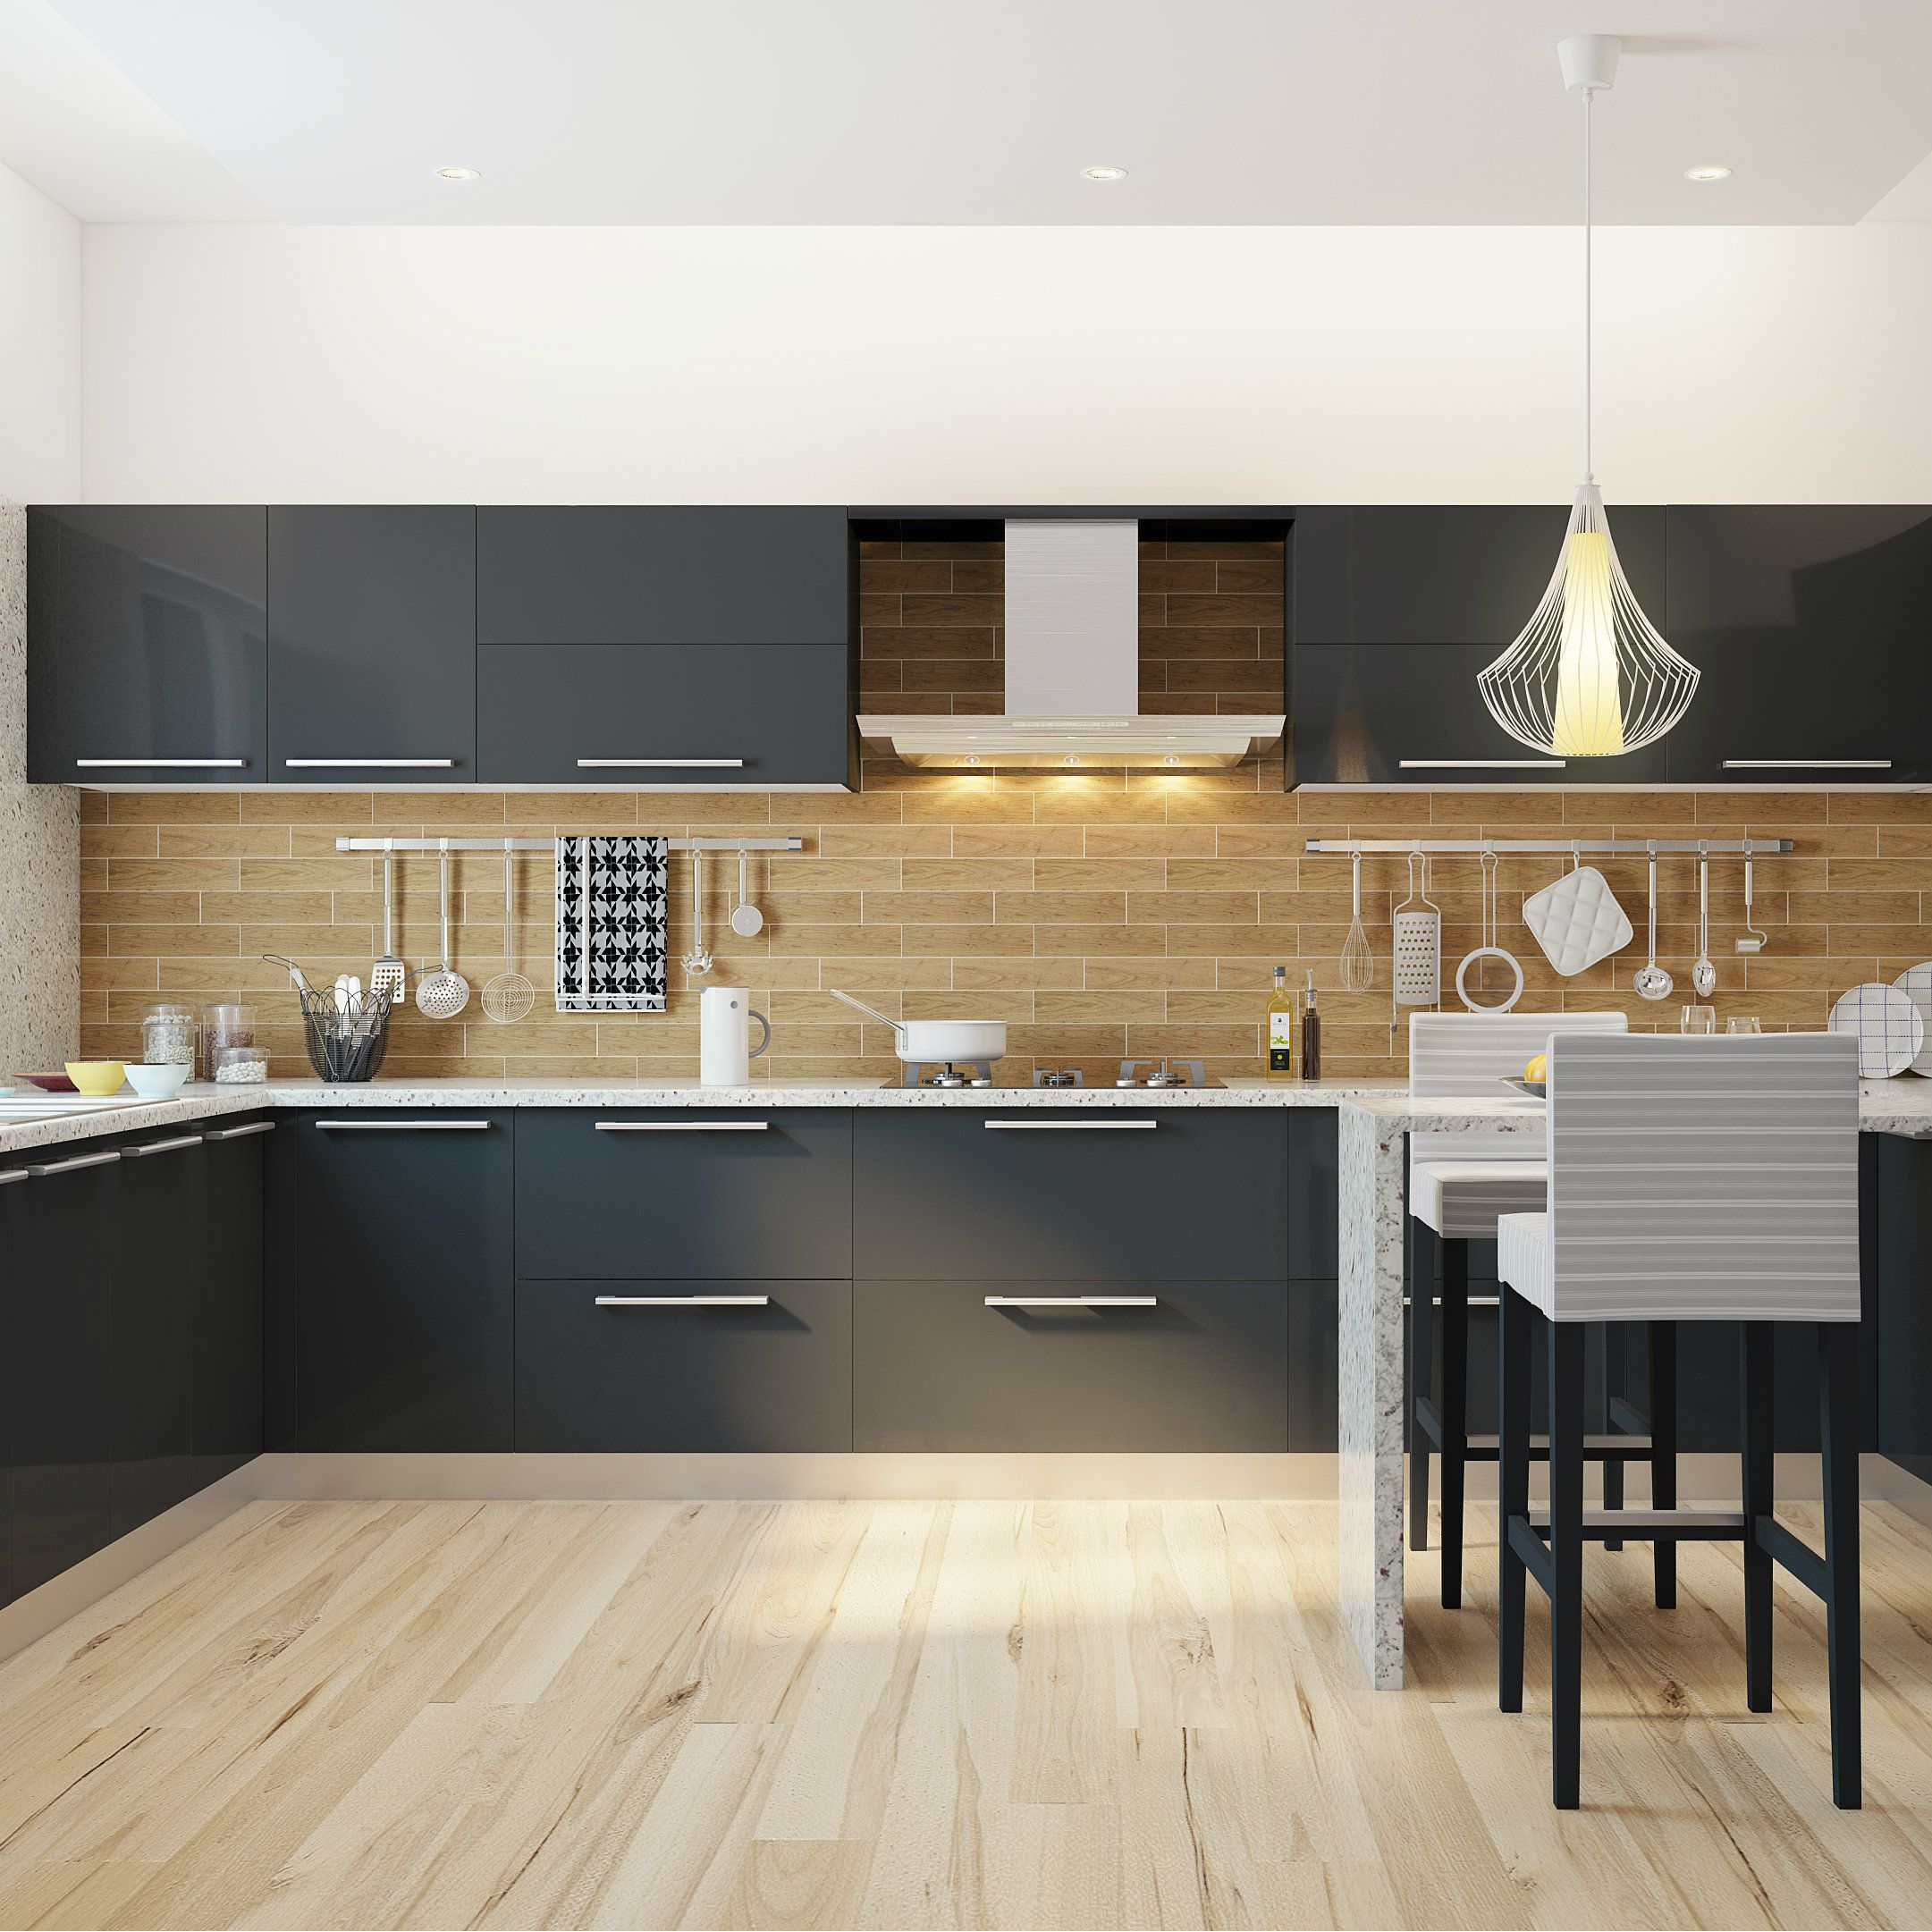 Pin On A Modular Kitchen: Sprawling Modular Kitchen With A Breakfast Counter. Perfect For Modern Indian Homes.